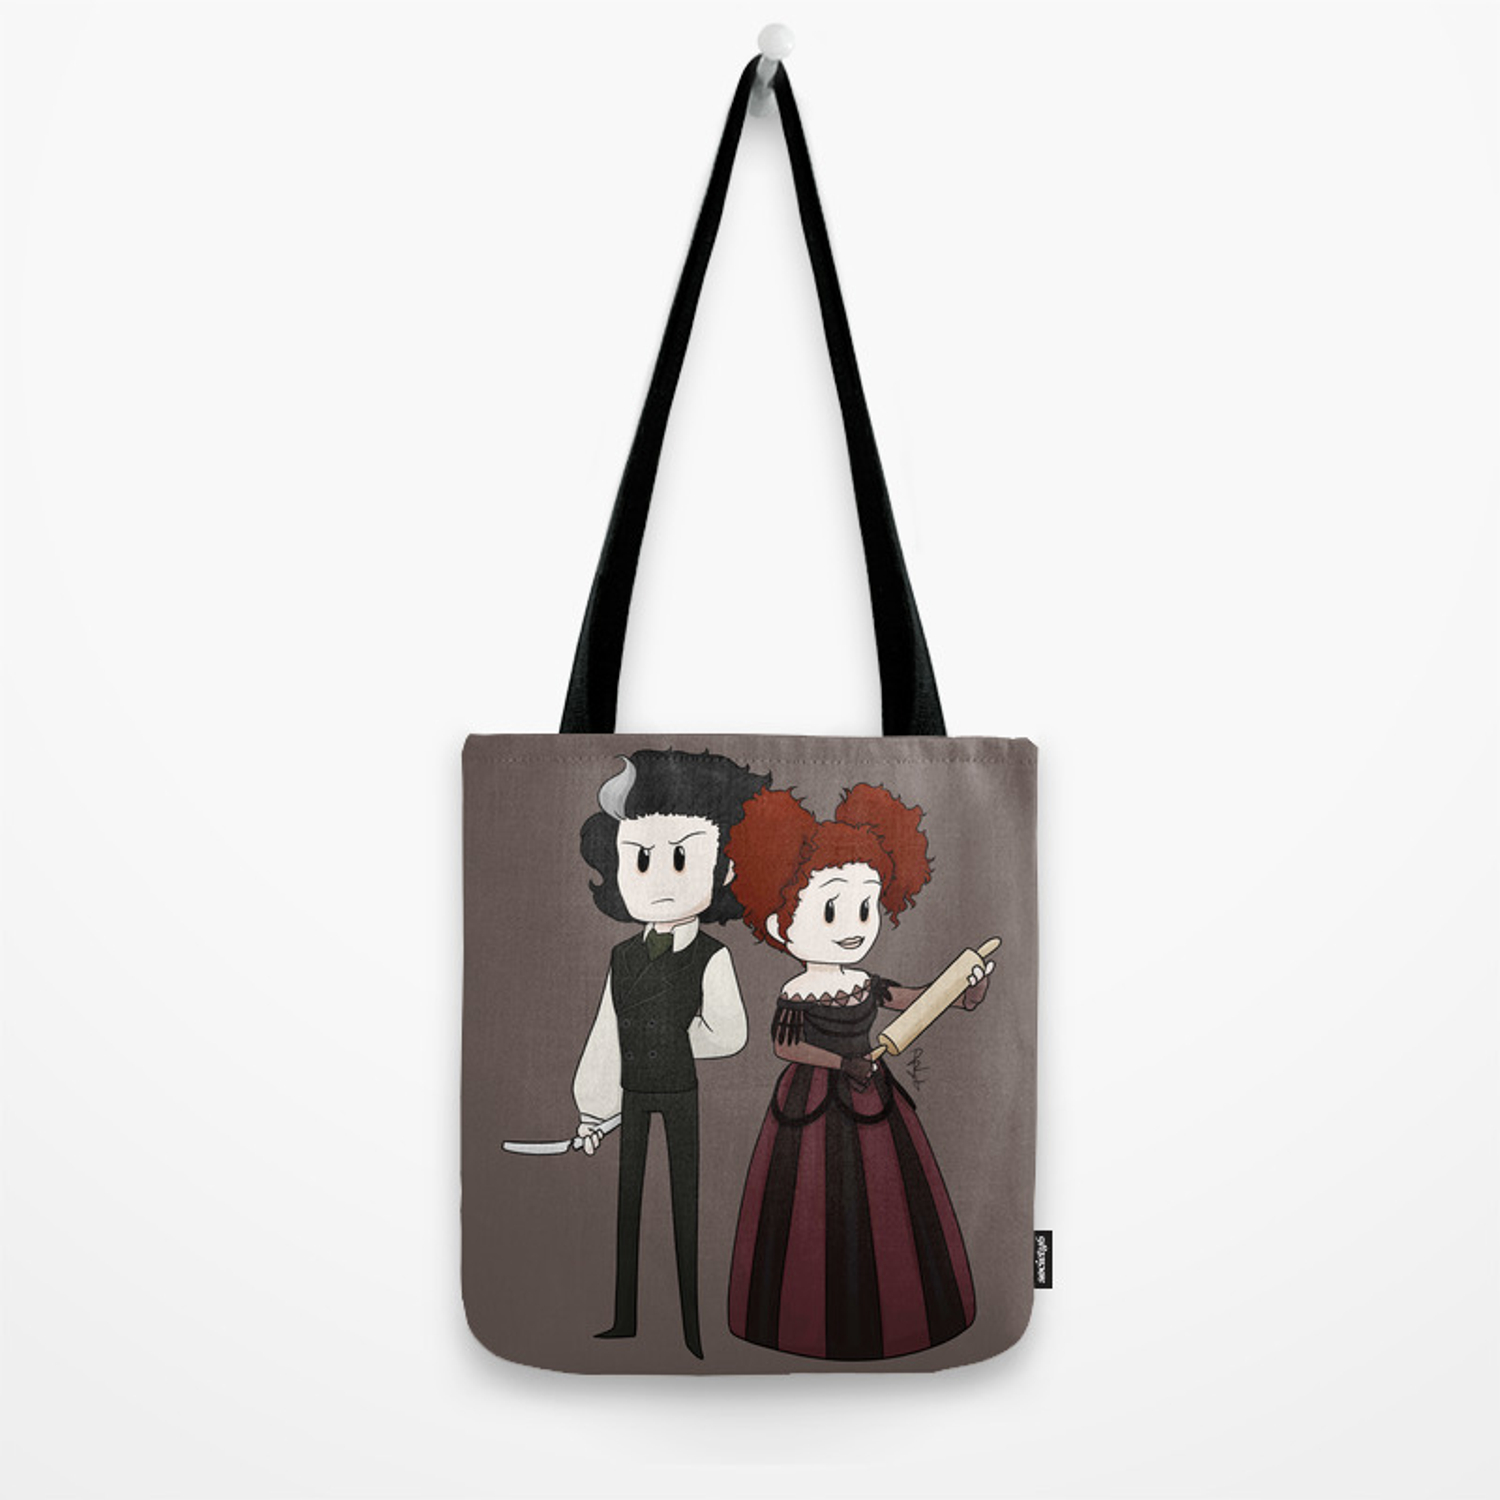 2077d73ee4f8c Sweeney Todd & Mrs. Lovett Tote Bag by artisticnutcase | Society6